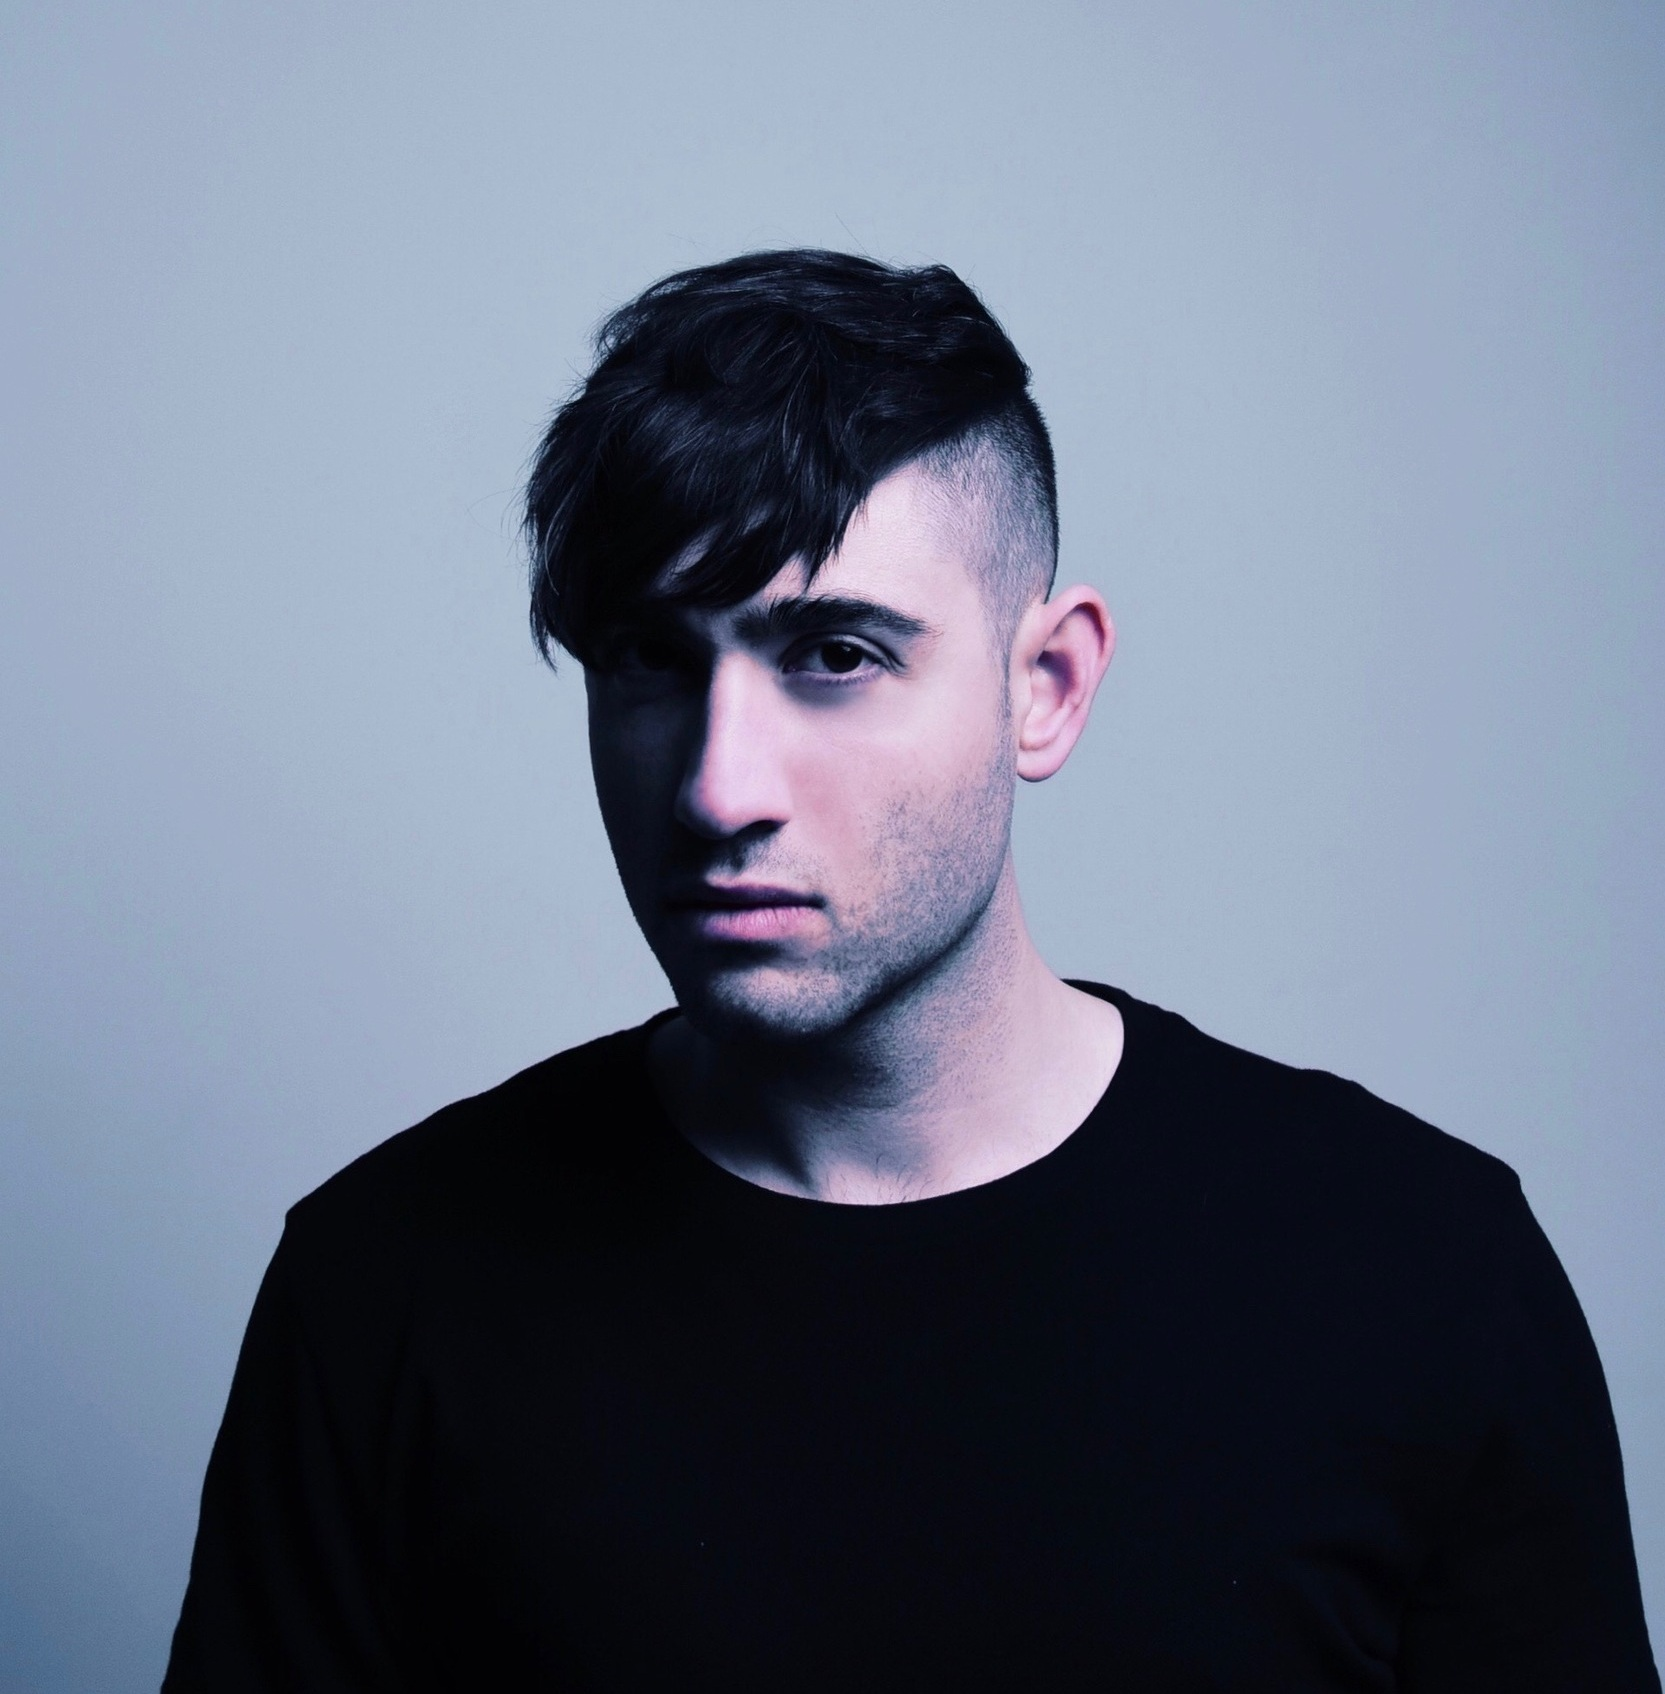 "Las Vegas-based performer   Justin Blau  , aka   3LAU  , is an in-demand DJ and electronic music producer known for his electro-, dubstep-, and house-influenced style. Born in Syossett, New York in 1991,   Blau   grew up in a creative family and began singing and playing guitar and piano in his youth. At age 13, he moved with his family to Las Vegas, Nevada, where he continued playing music. It wasn't until traveling in Sweden in 2011 that he discovered electronic dance music. By the end of the year, he had adopted the stage name   3LAU  and begun mixing his own tracks, uploading mash-ups to YouTube. Also that year, he debuted the first volume of his ongoing   Dance Floor Filth   series and had his material spun by several prominent DJs, including   Porter Robinson   and   Bob Sinclair  . Interest in   3LAU  's talents spread quickly, and he was soon commissioned for a bevy of official remixes, including one for   Zedd  's ""Spectrum."" In April 2014 he released ""Vikings,"" a collaboration with   Botnek   on the Dim Mak label. More singles followed, including 2014's ""We Came to Bang"" (featuring   Luciana  ), 2015's ""Alive Again"" (featuring   Emma Hewitt  ), 2016's ""Is It Love"" (featuring   Yeah Boy  ), and more. He then paired with   Said the Sky   and   Neonheart   for 2016's ""Fire."" Led by the 2017 singles ""On My Own,"" ""Walk Away,"" and ""Star Crossed,""   3LAU  's full-length debut,   Ultraviolet  , arrived in February 2018. Single ""Touch"" with   Carly Paige   became a modest hit and the collection received the Remixed treatment later that year.   3LAU   teamed with   Paige   again in 2019 for the bright single ""Would You Understand."""